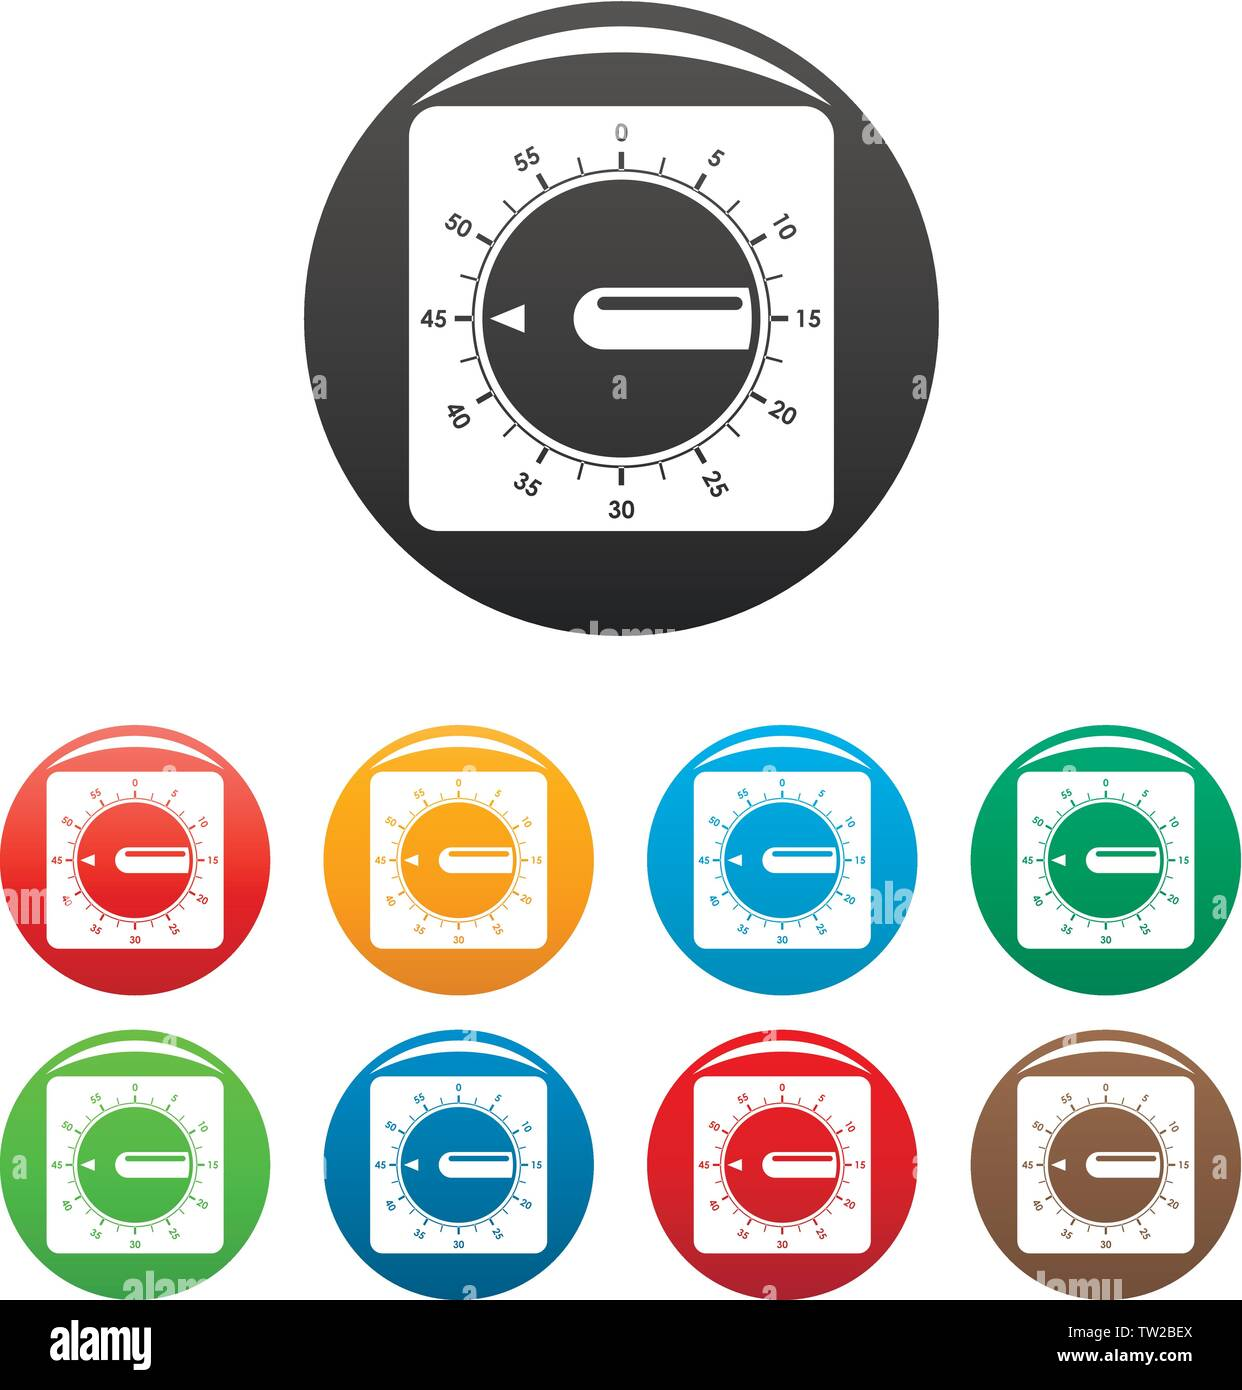 Timer clock icons set 9 color vector isolated on white for any design - Stock Vector